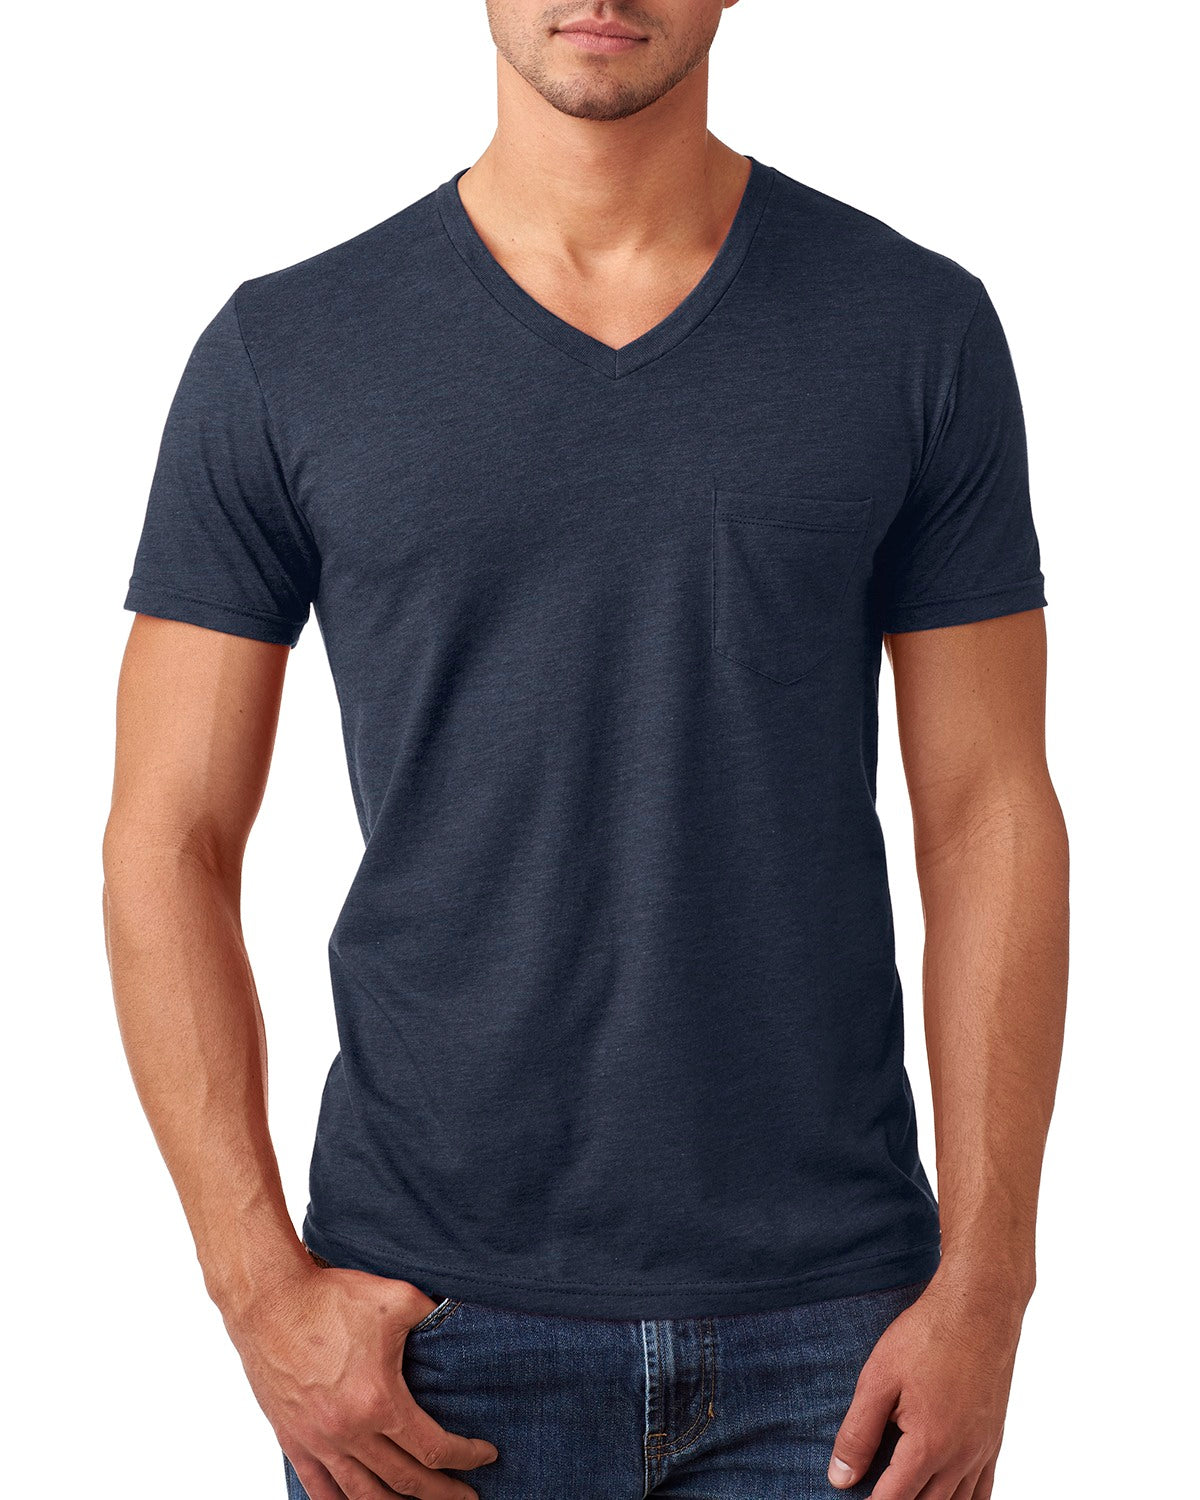 NEXT LEVEL MEN'S CVC TEE WITH POCKET